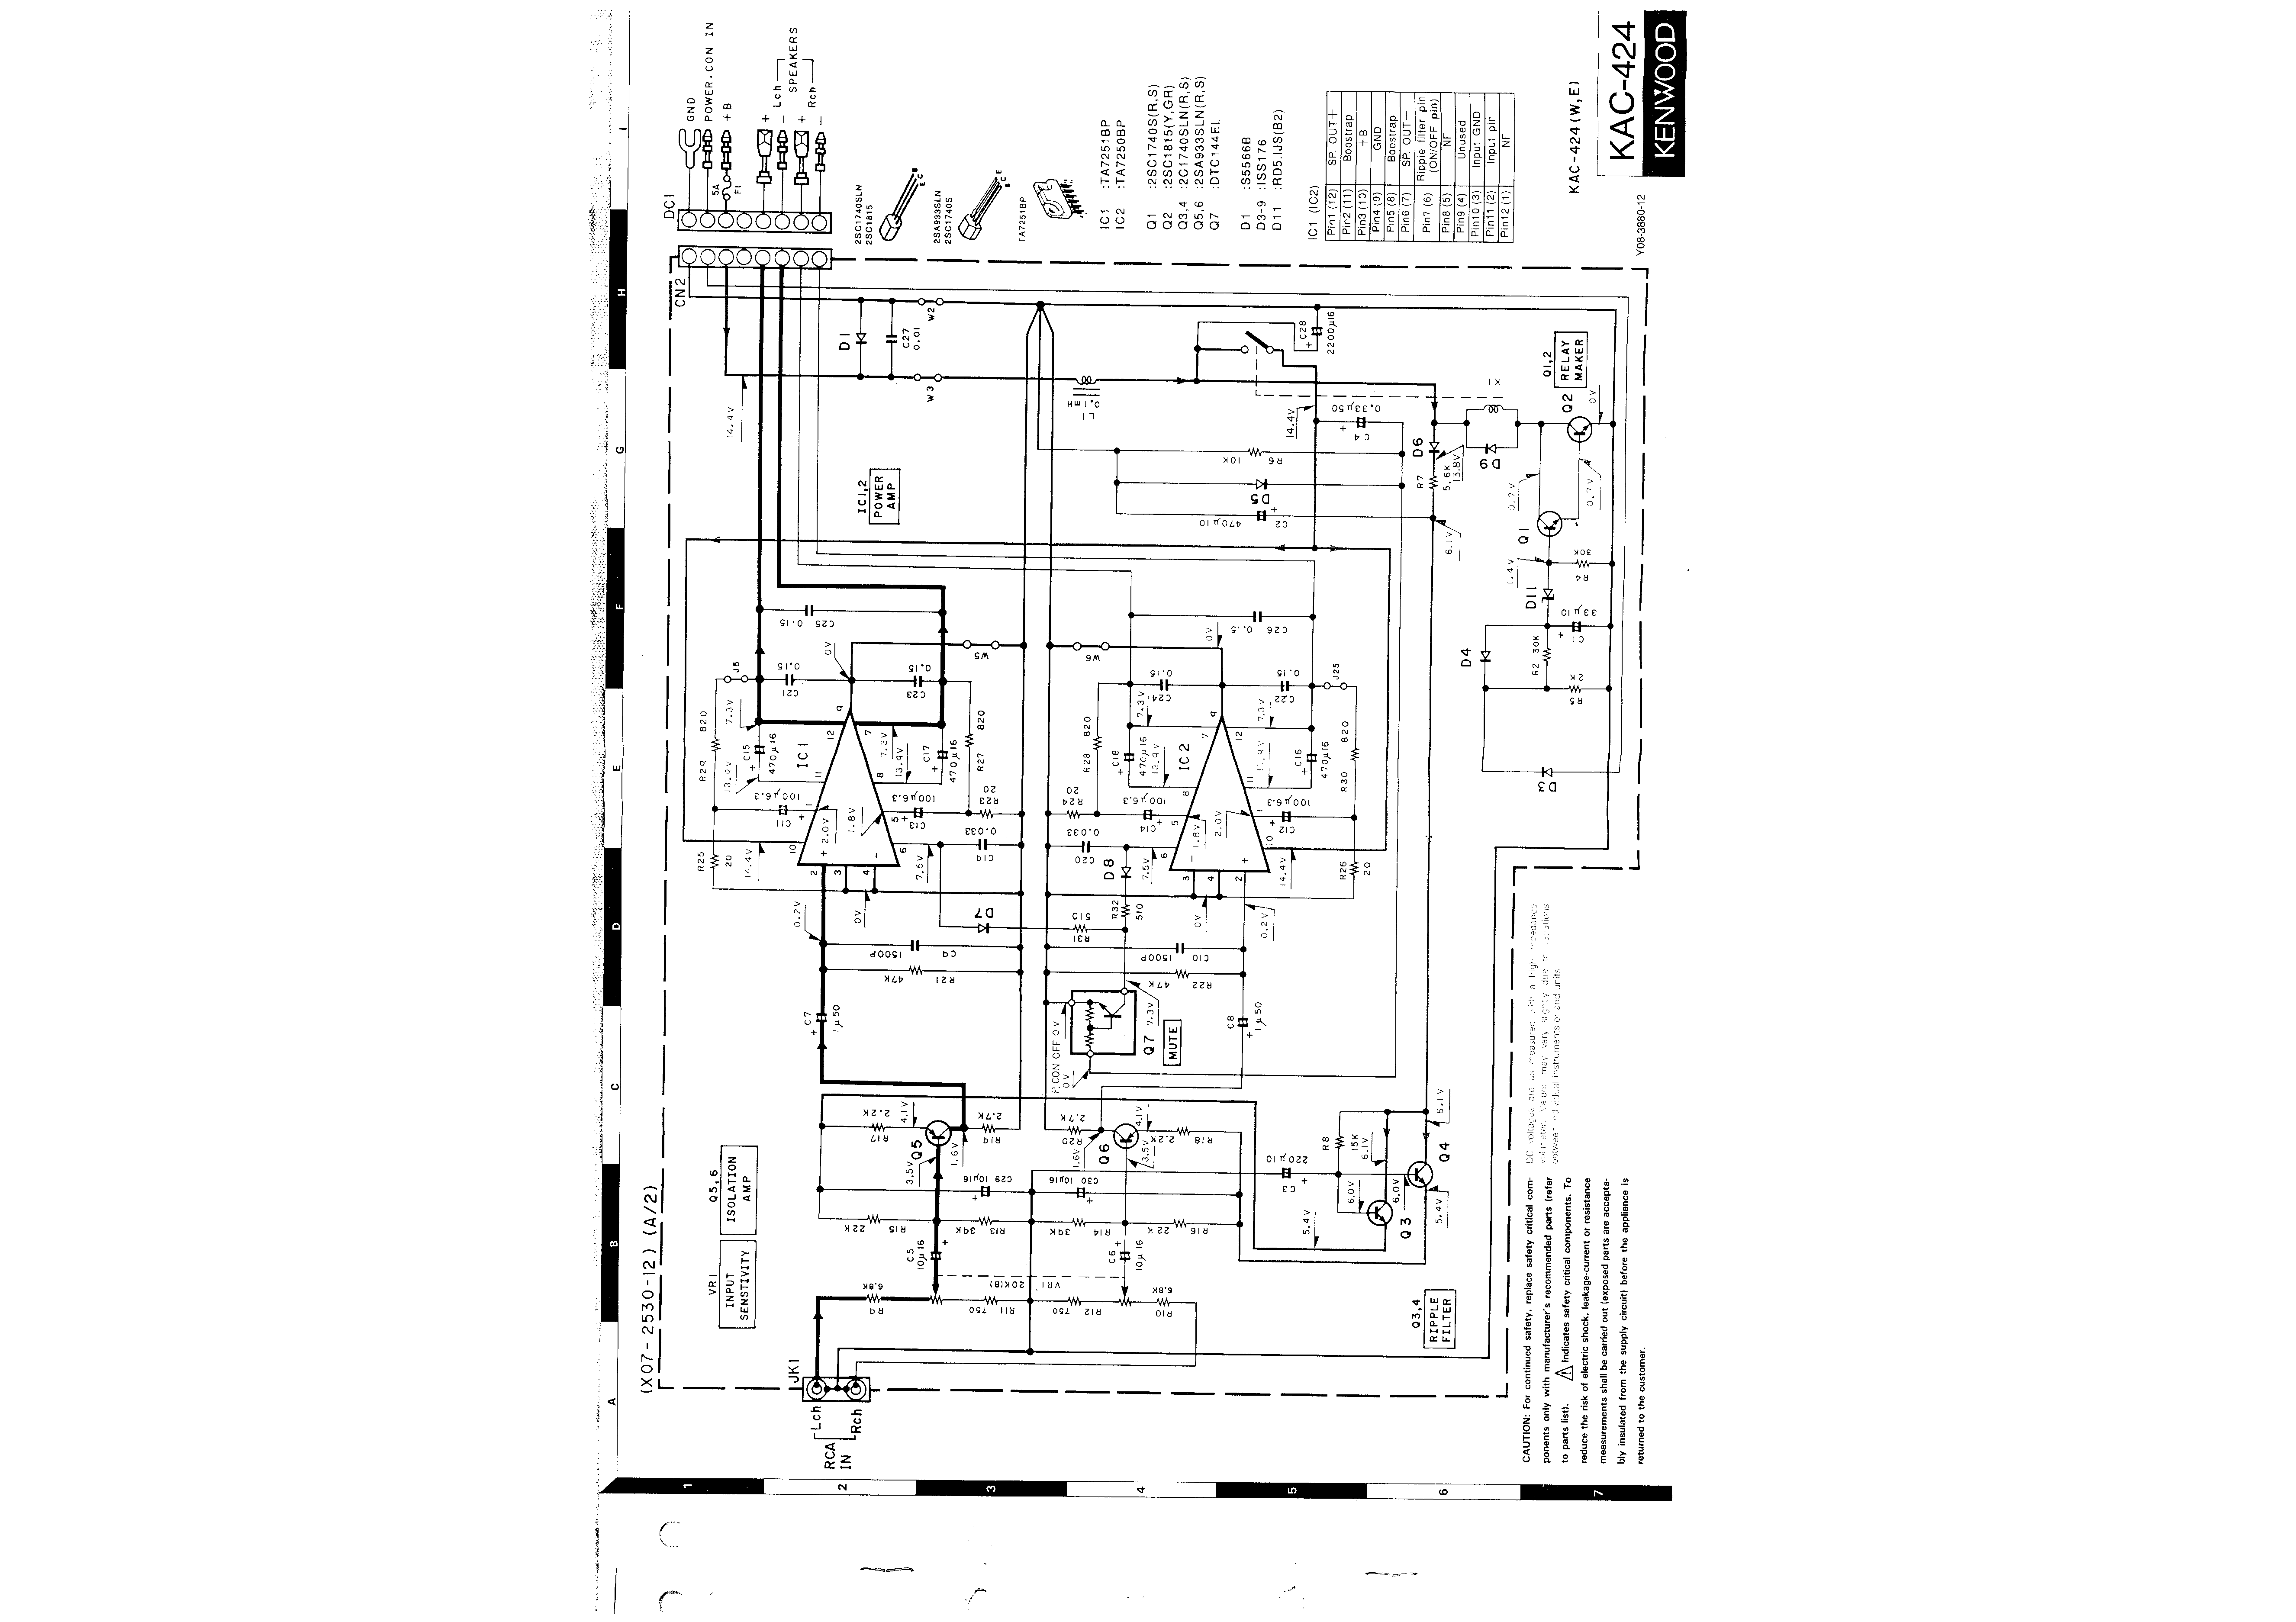 Logitech Wiring Diagram Page 3 And Schematics Z506 Info U2022 Rh Cardsbox Co Z523